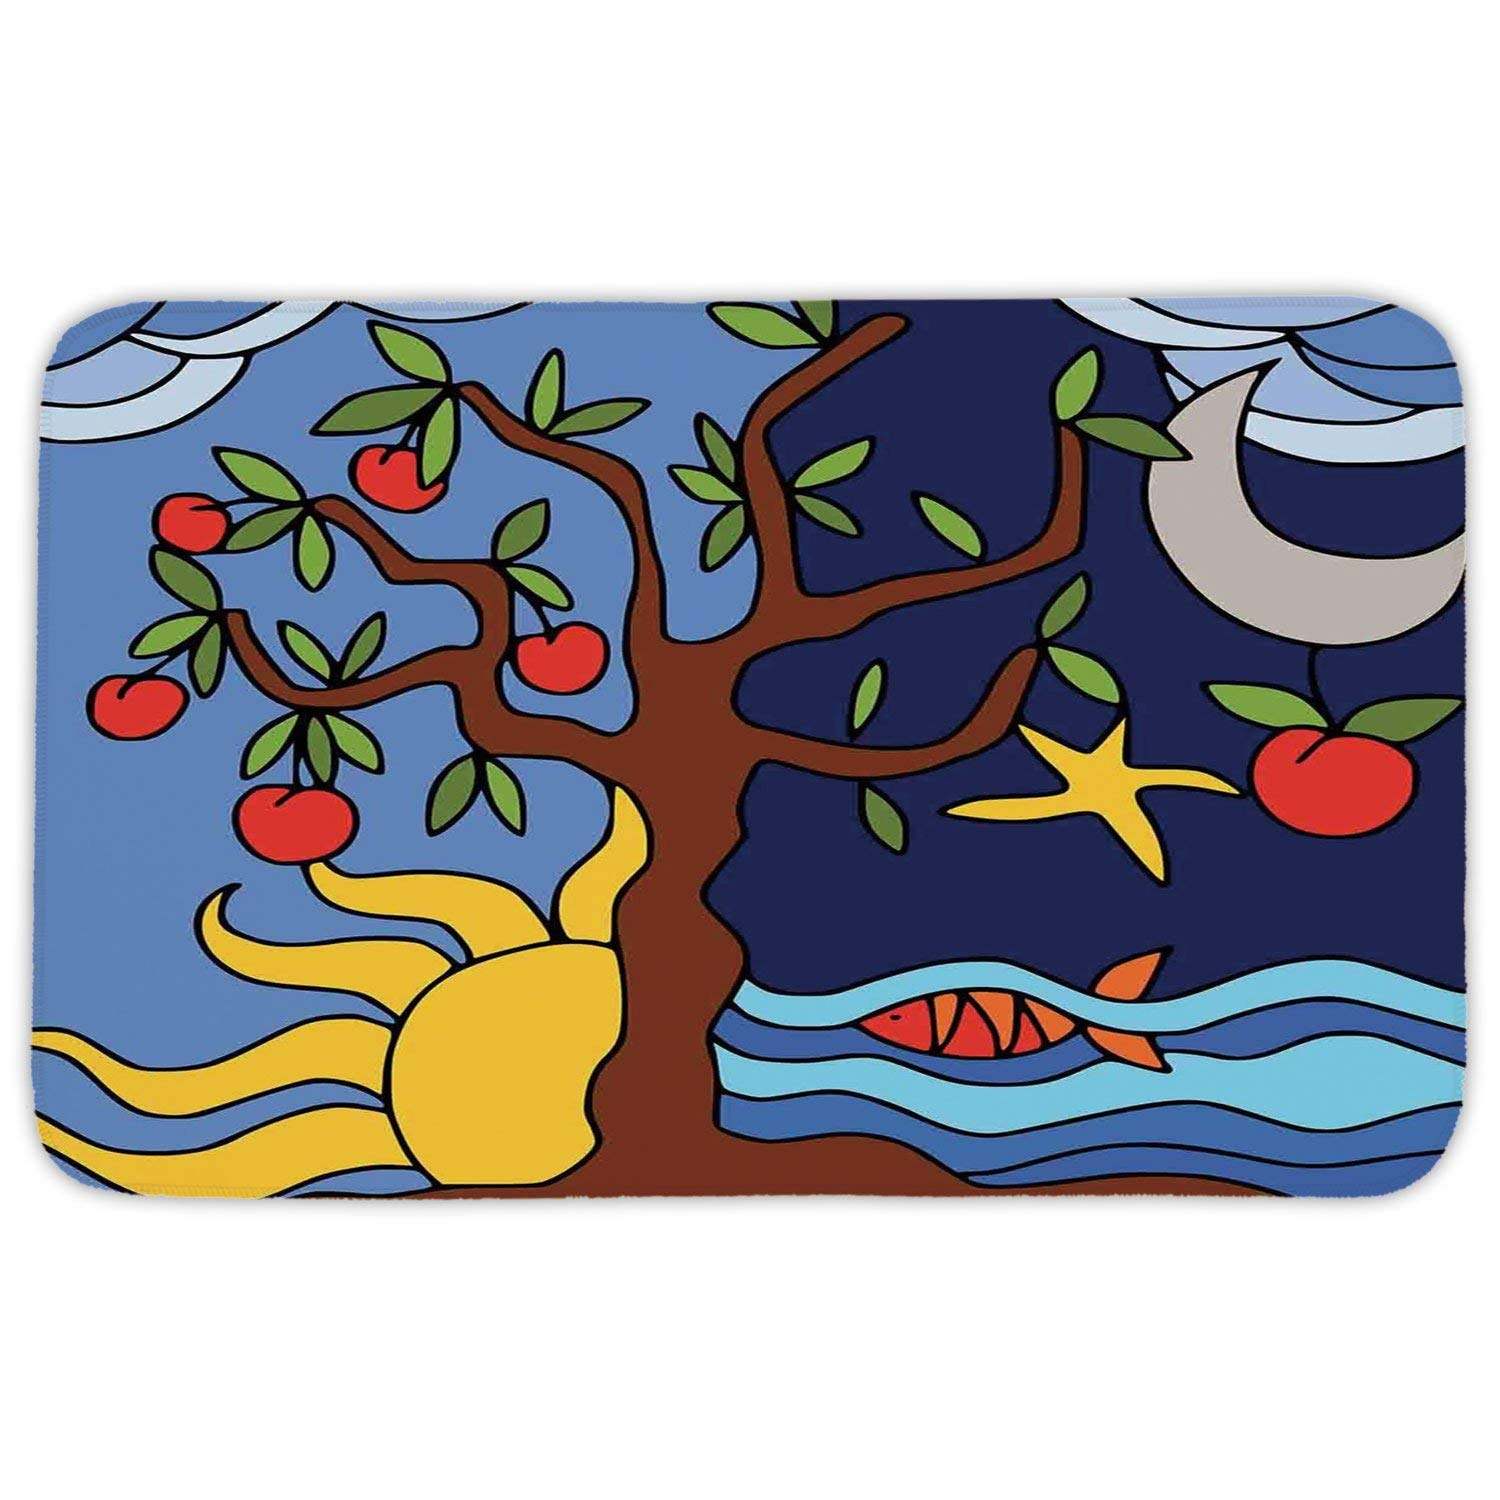 Get Quotations Rectangular Area Rug Mat Tree Of Life Past Ilration Starry Night And